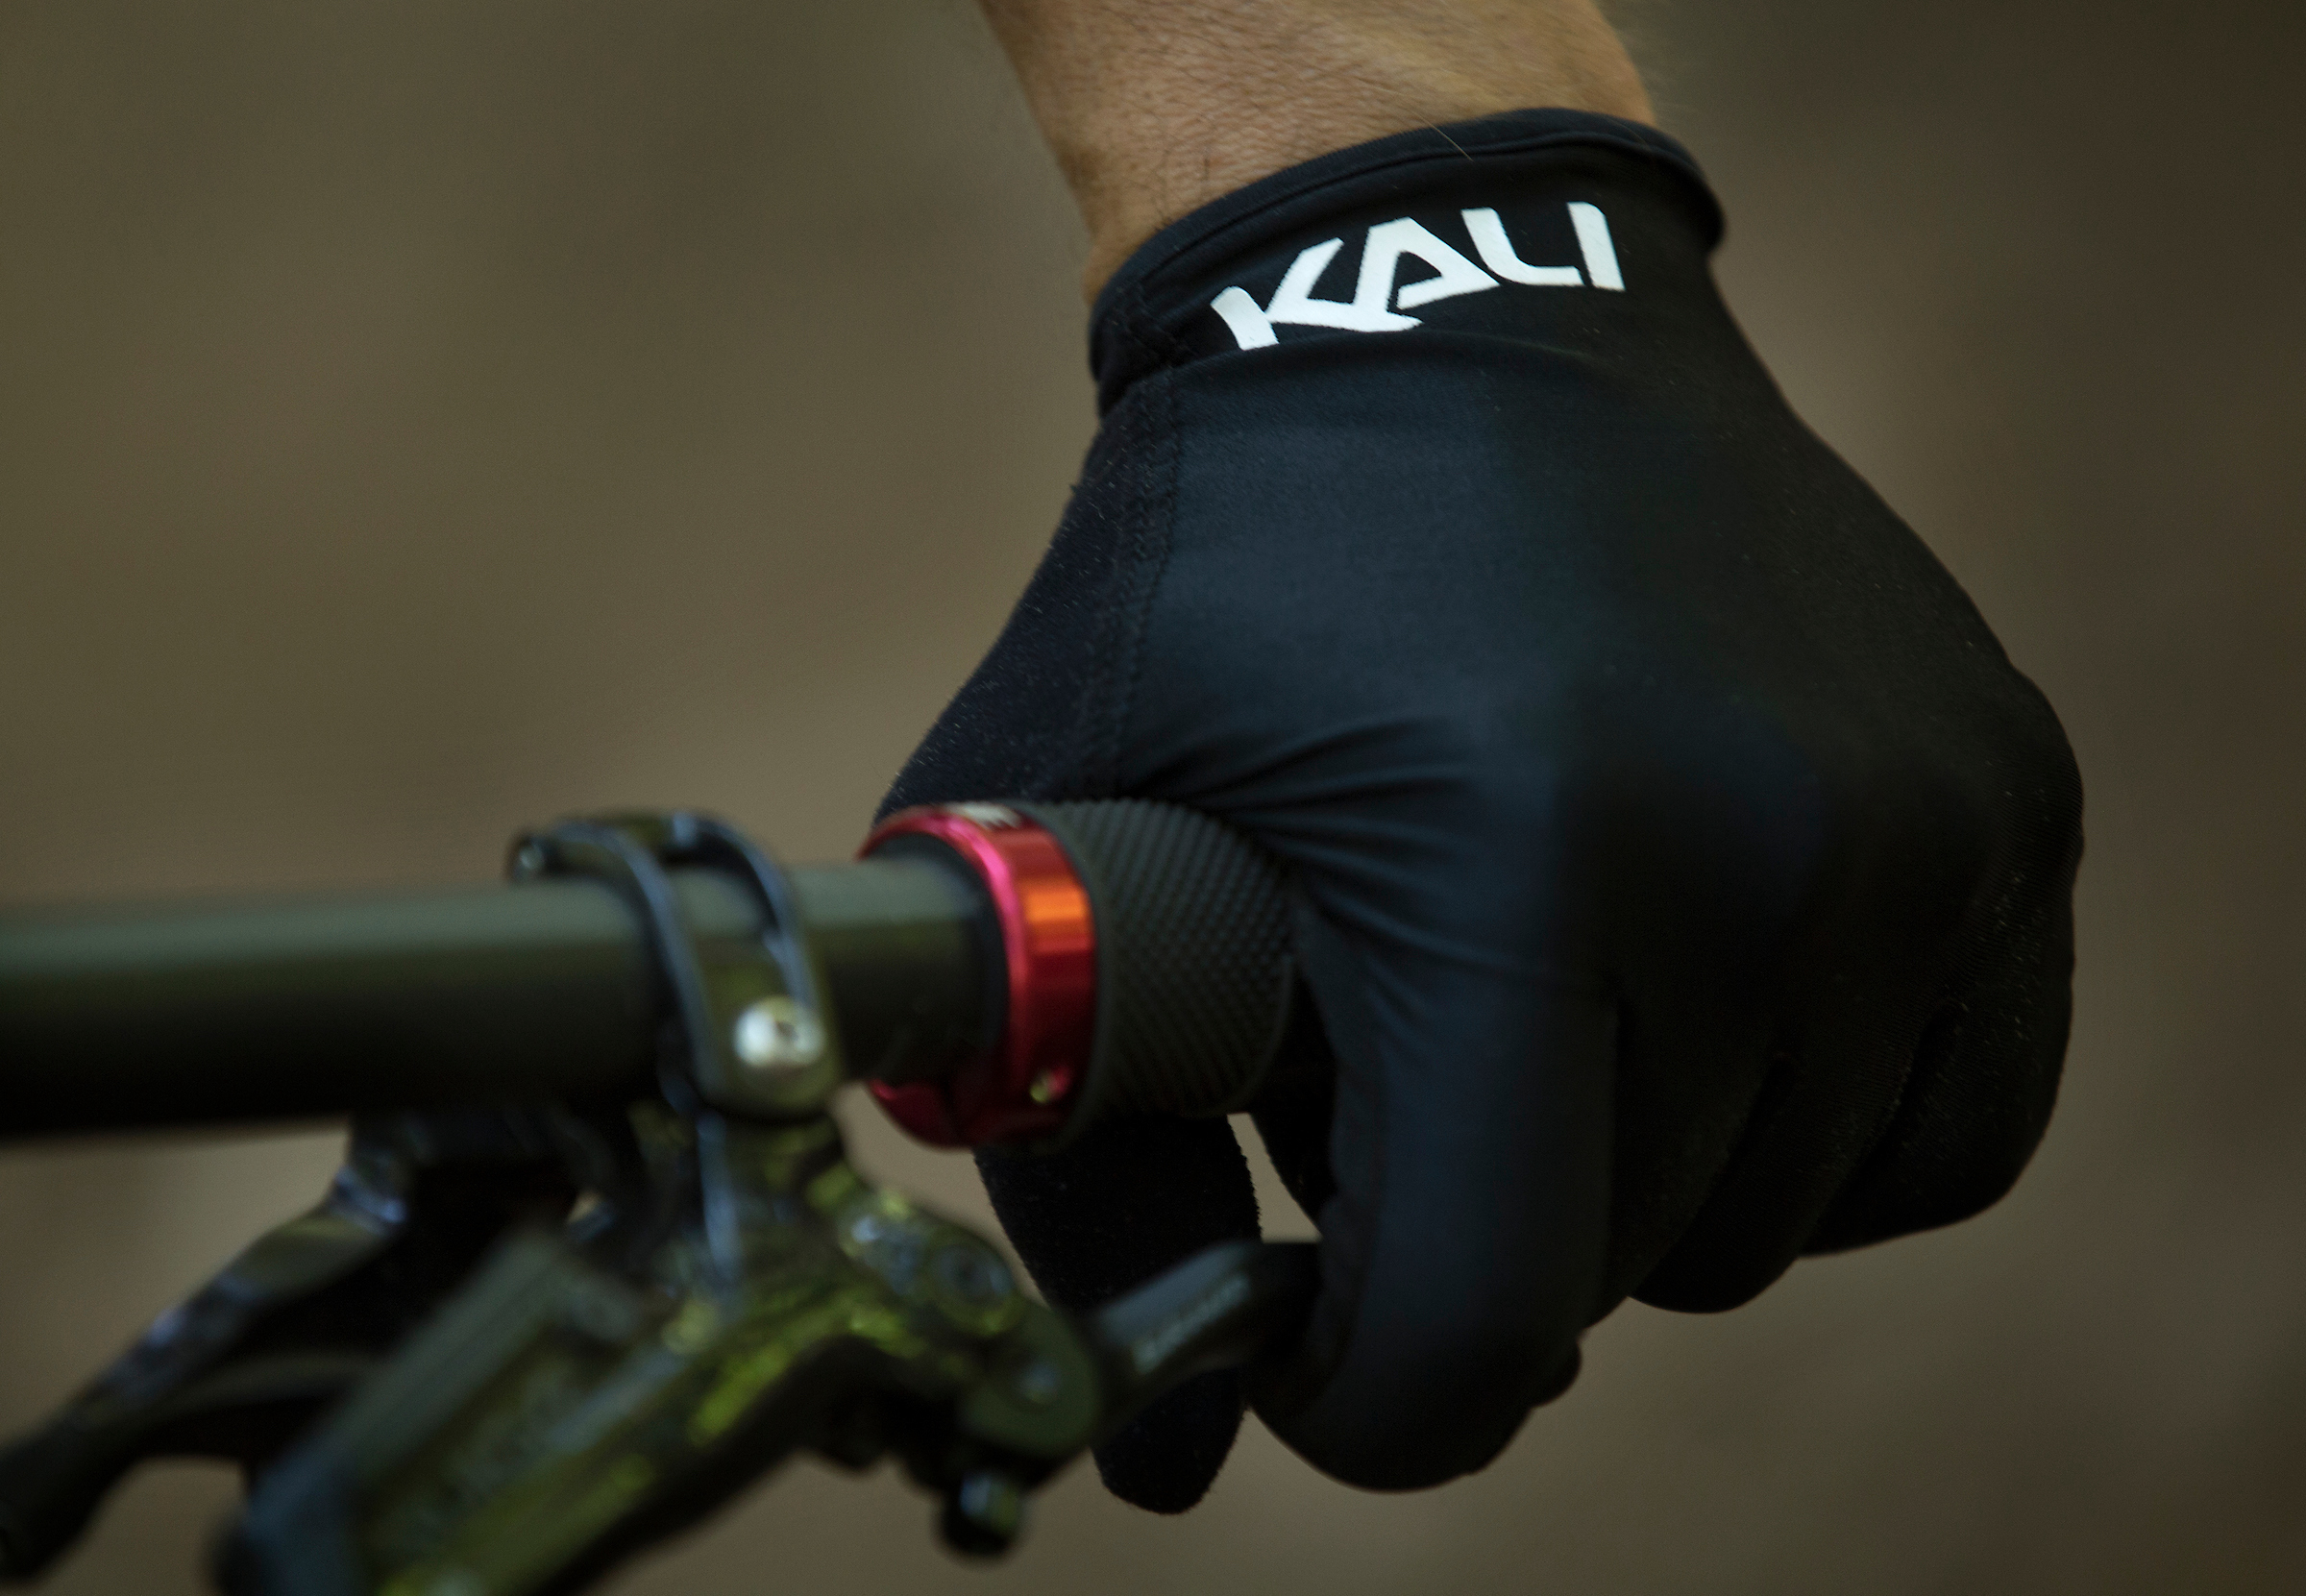 Being Distant with Kali Protectives